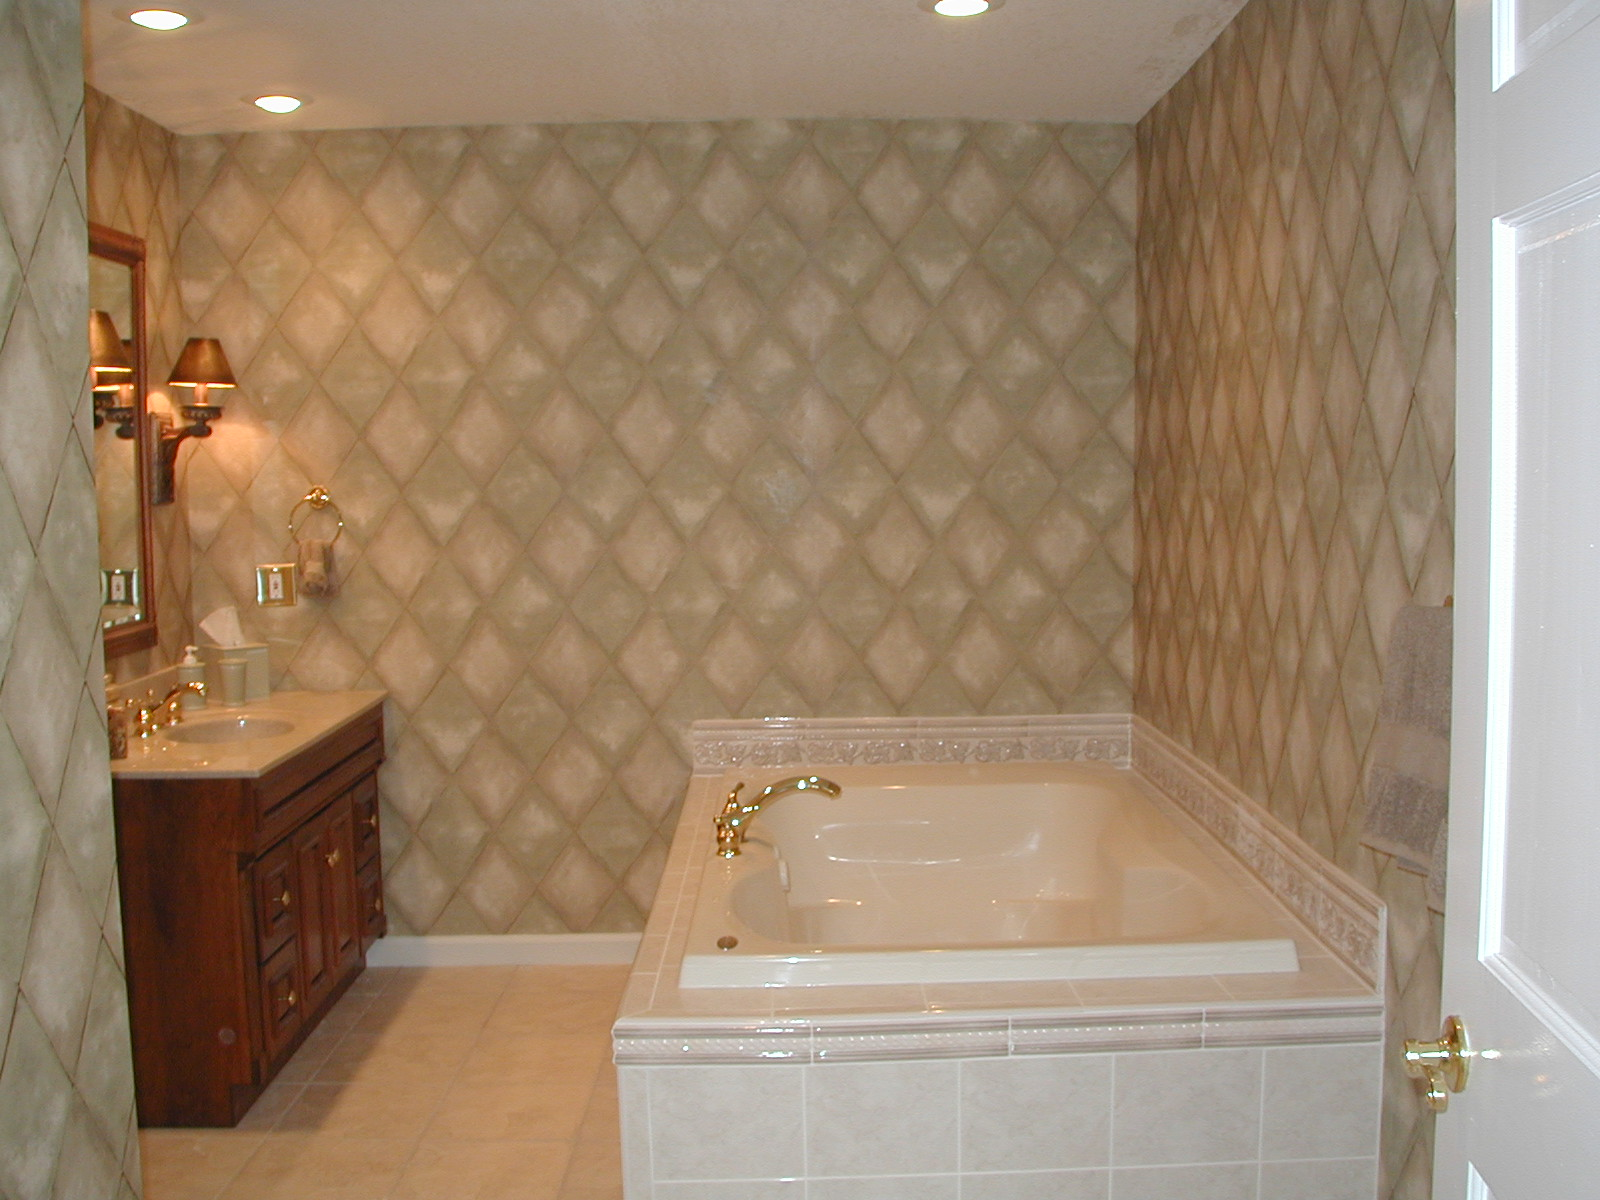 Bathroom designs pictures with tiles - Olympus Digital Camera